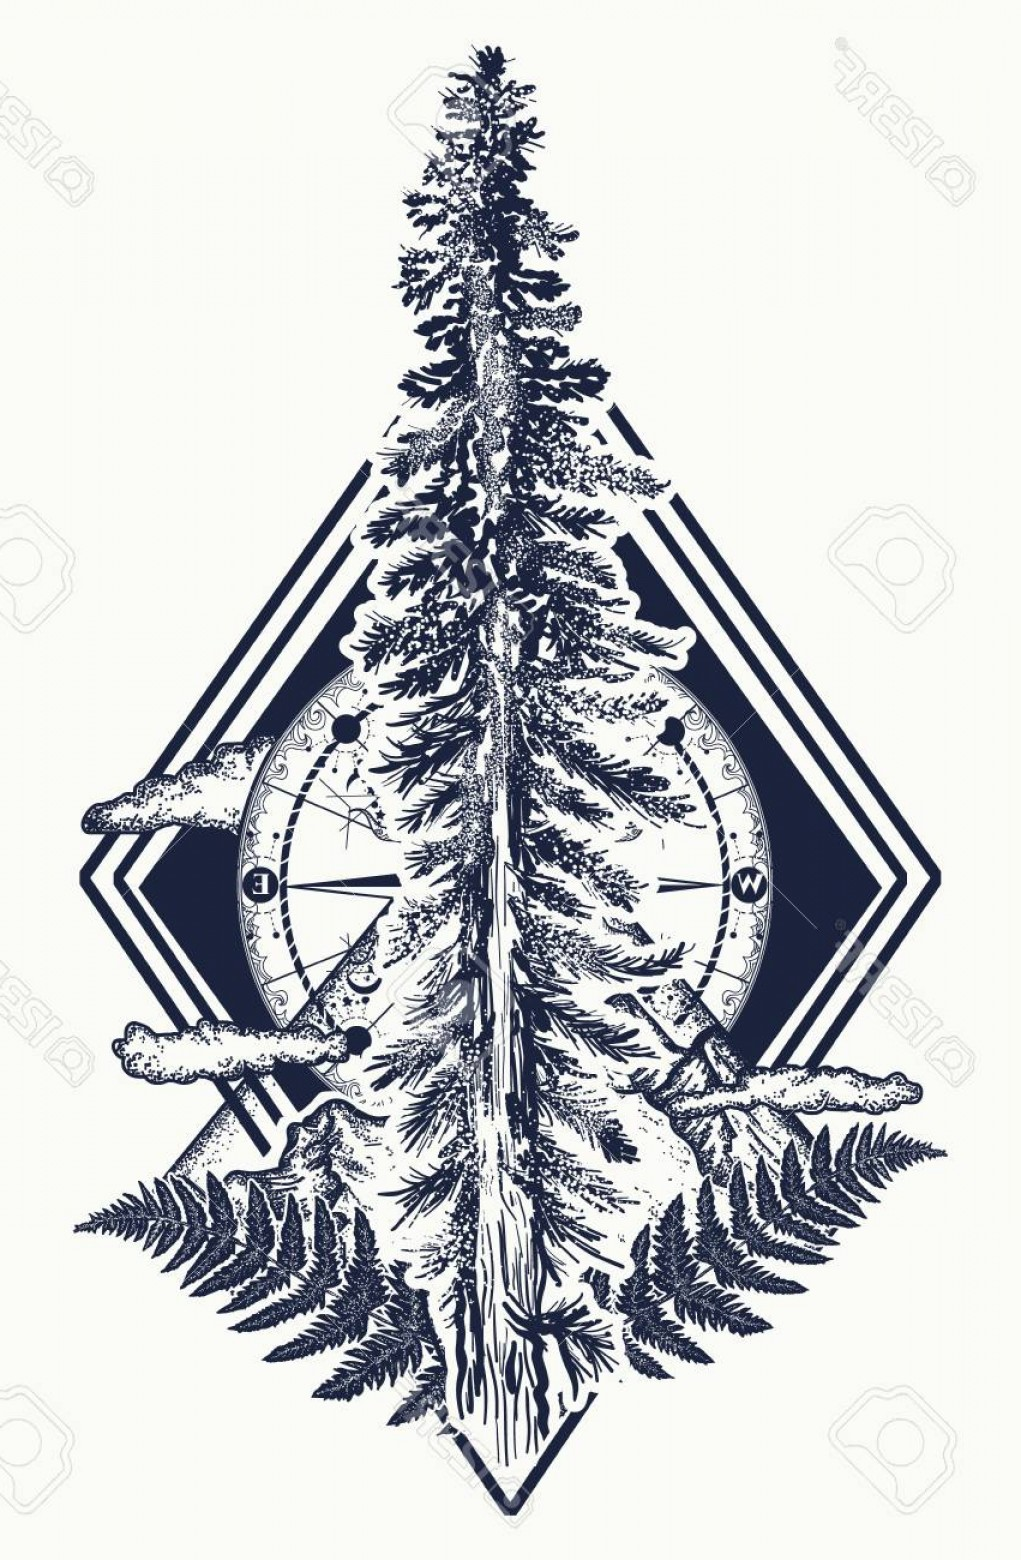 Vector Art Mountains Trees Colorado: Photostock Vector Pine Tree And Mountains Compass Tattoo Symbol Of Tourism Forest Rock Climbing Camping Fir Tree And C